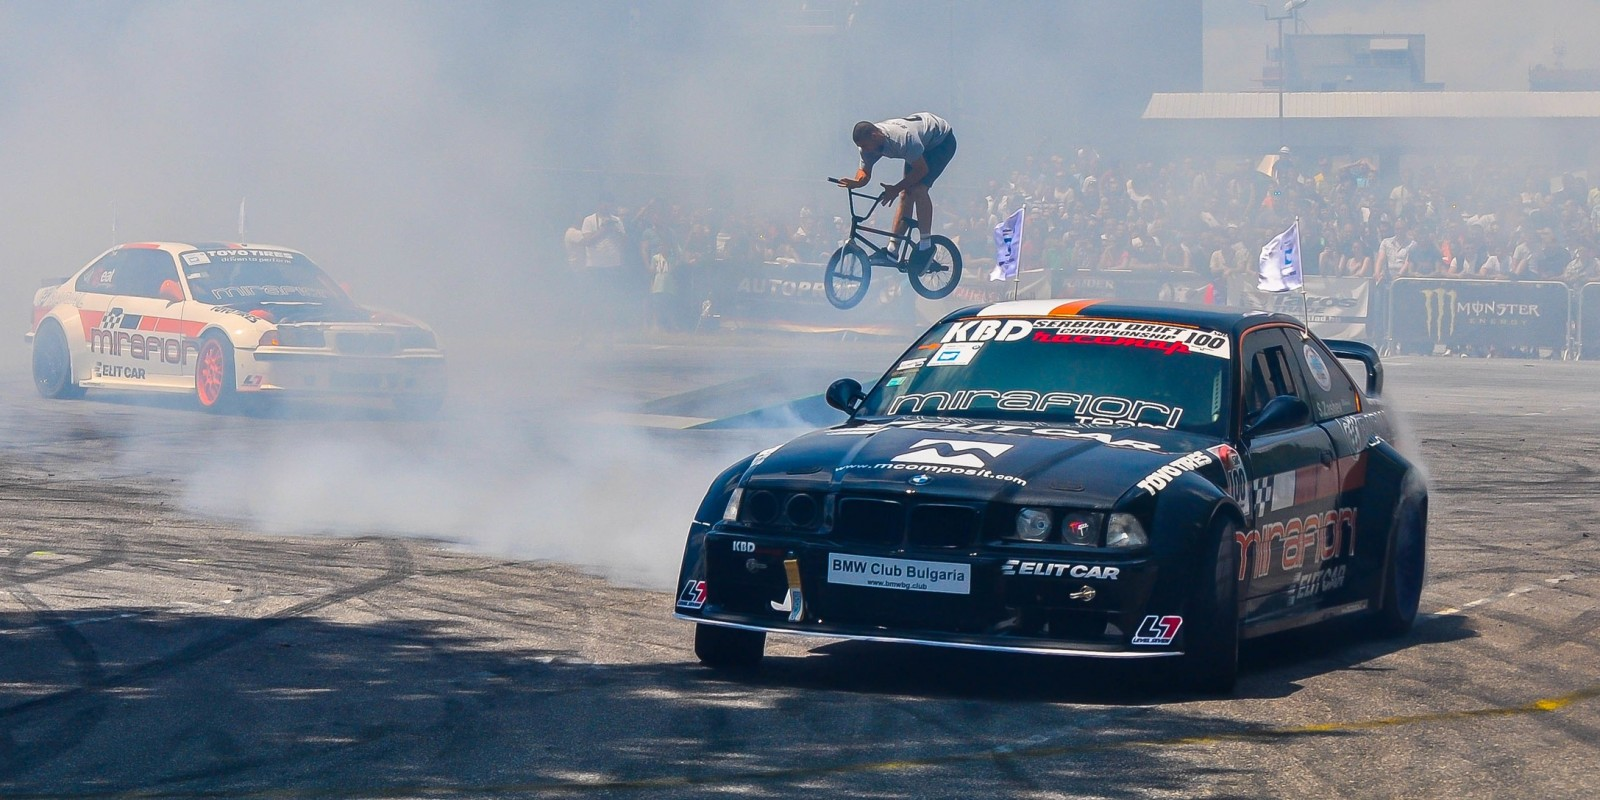 Tuning Show 2016 in Sofia with drift & BMX action